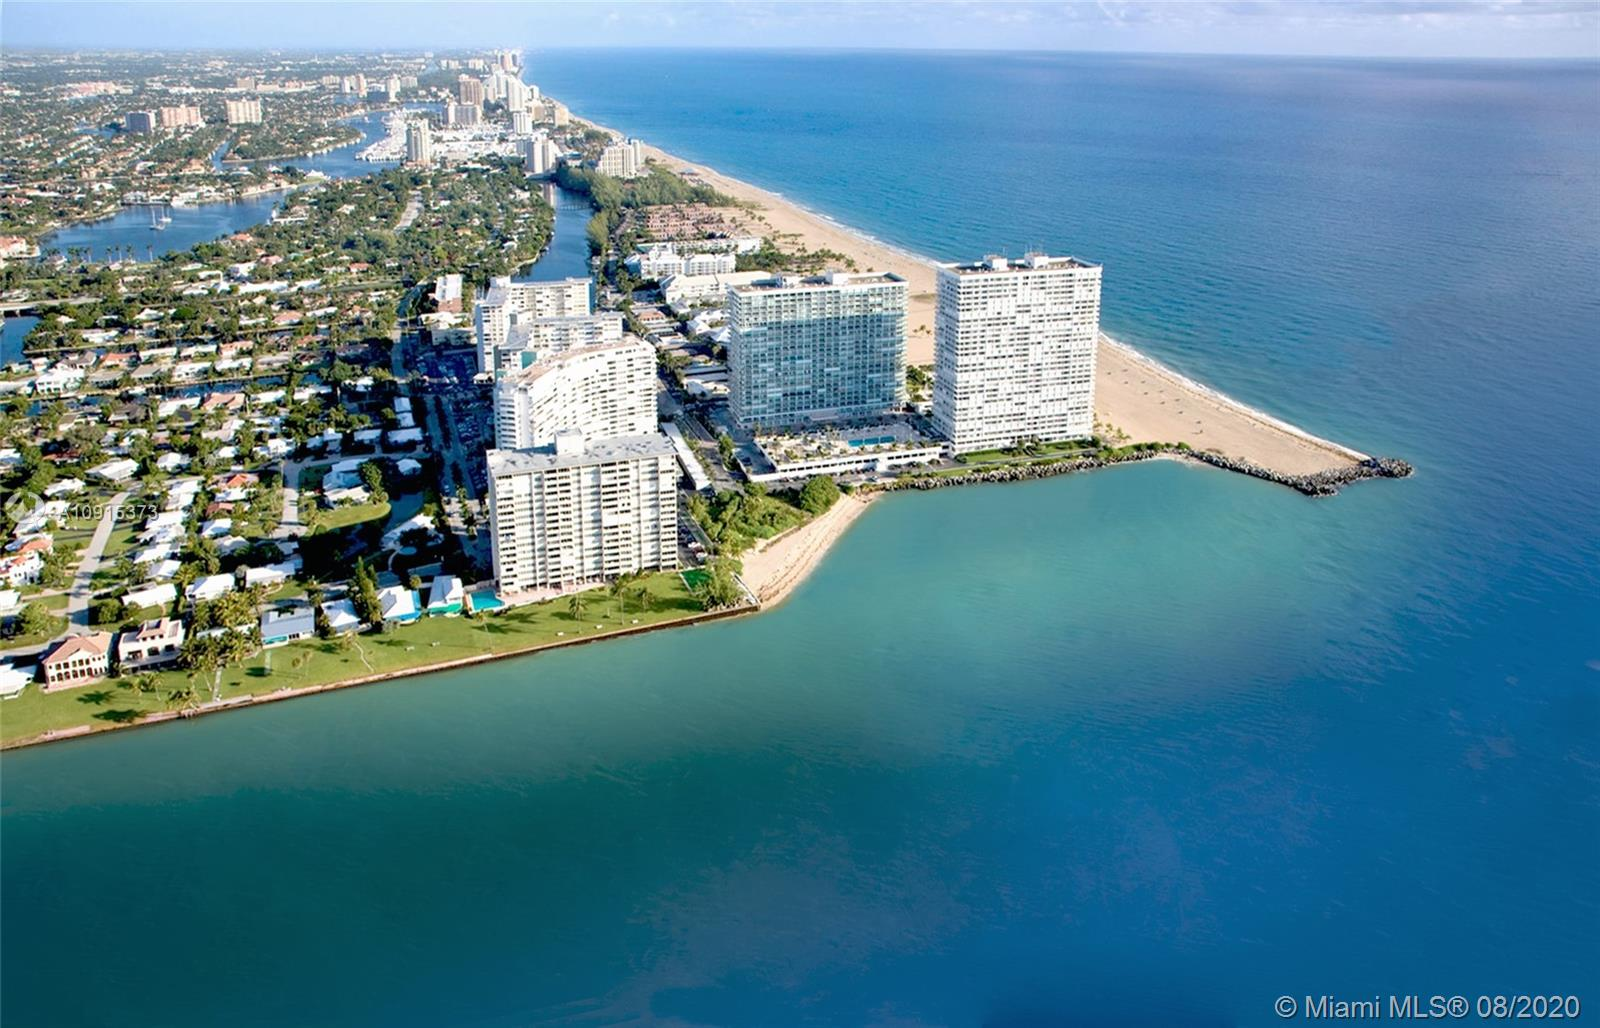 Enjoy spectacular skyline and partial ocean views from this highly desirable sub-penthouse model with over 1,900 square feet under air and full impact glass.  Priced to sell and ready for your updates. **3rd bedroom currently open to living room.**  Newly renovated luxury building with five star amenities is right on the sand and offers one of the best locations in all of Fort Lauderdale. Enjoy the beach, fitness center, putting green, BBQ, fishing and a heated inlet view pool. Highly desirable Harbor Beach area location is just minutes to Las Olas, downtown, airport and all major roads and close proximity to restaurants, beach clubs and more.